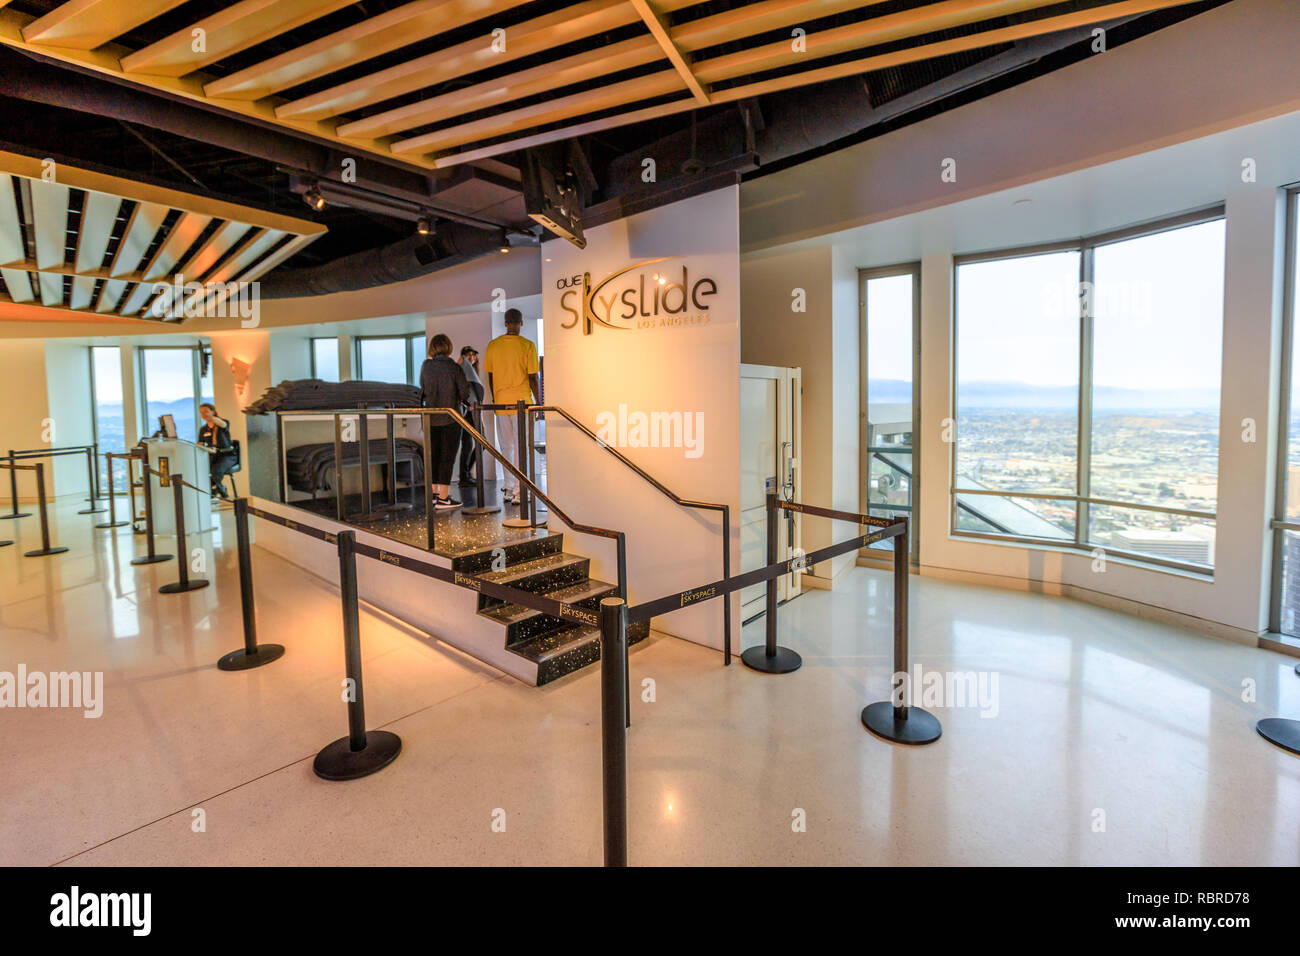 Los Angeles, California, United States - August 9, 2018: people waiting to make a ride on the Skyslide all-glass at popular US Bank Tower with open-air terrace over the downtown LA. - Stock Image